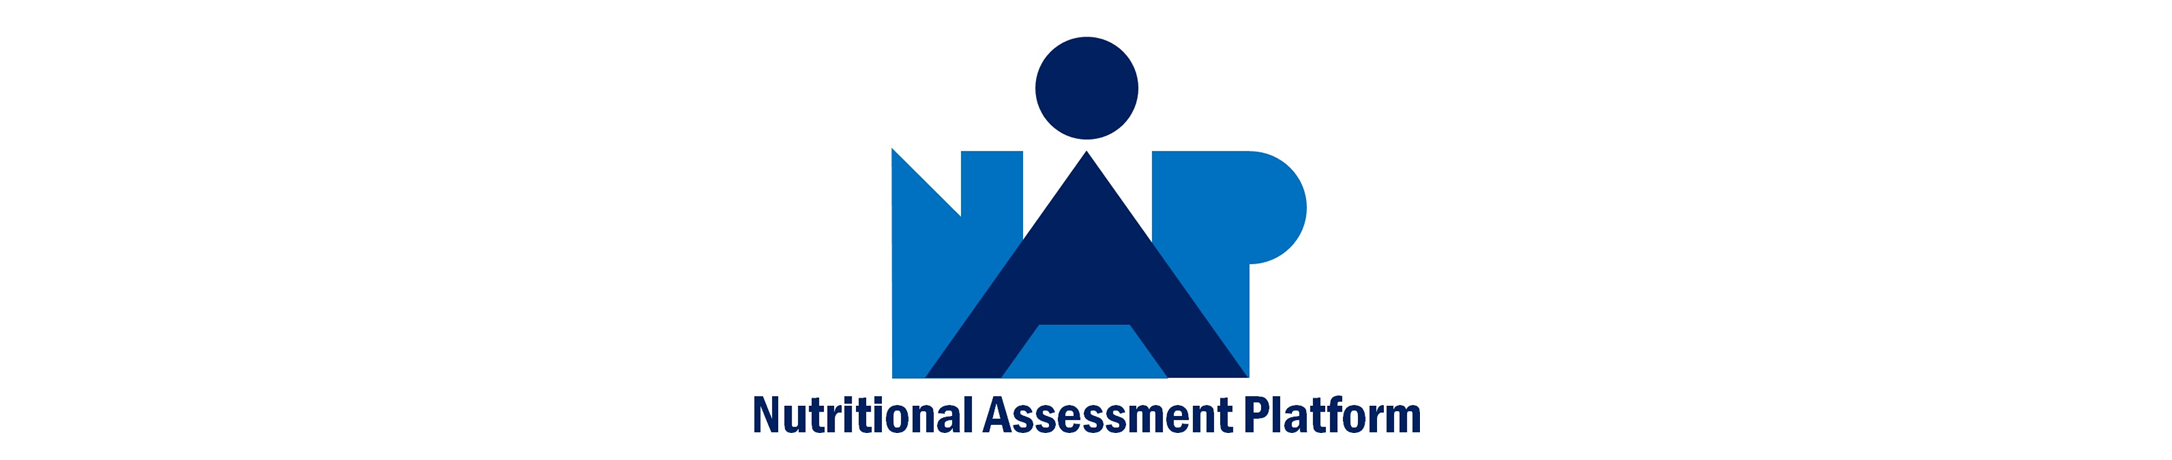 nutritionalassessment.nl